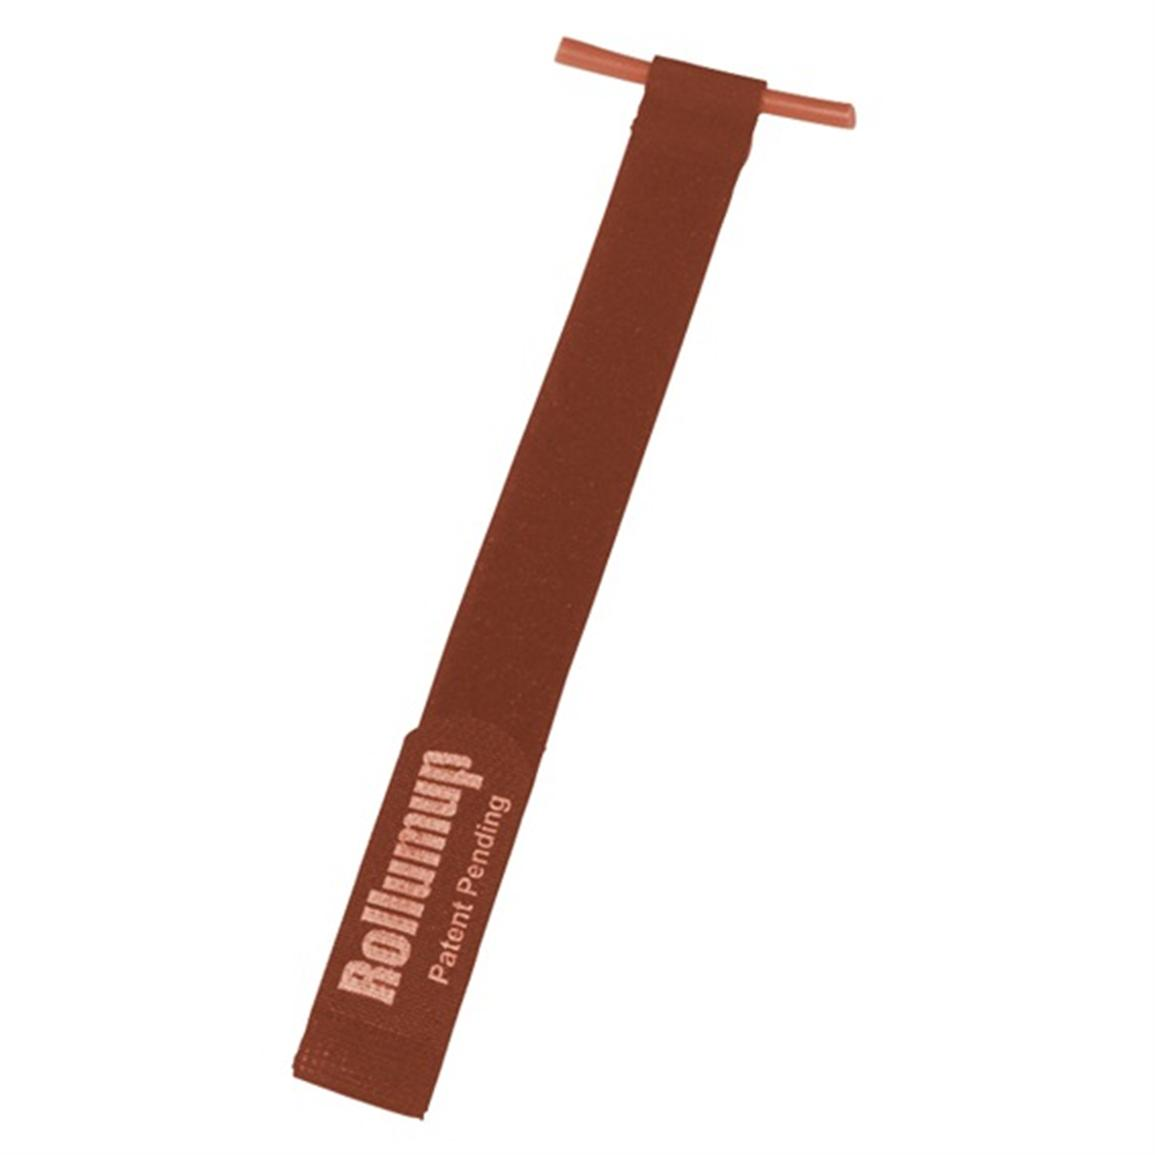 U Camp Products Burgundy RollumUp Party Light Holder, 7 - Pk.